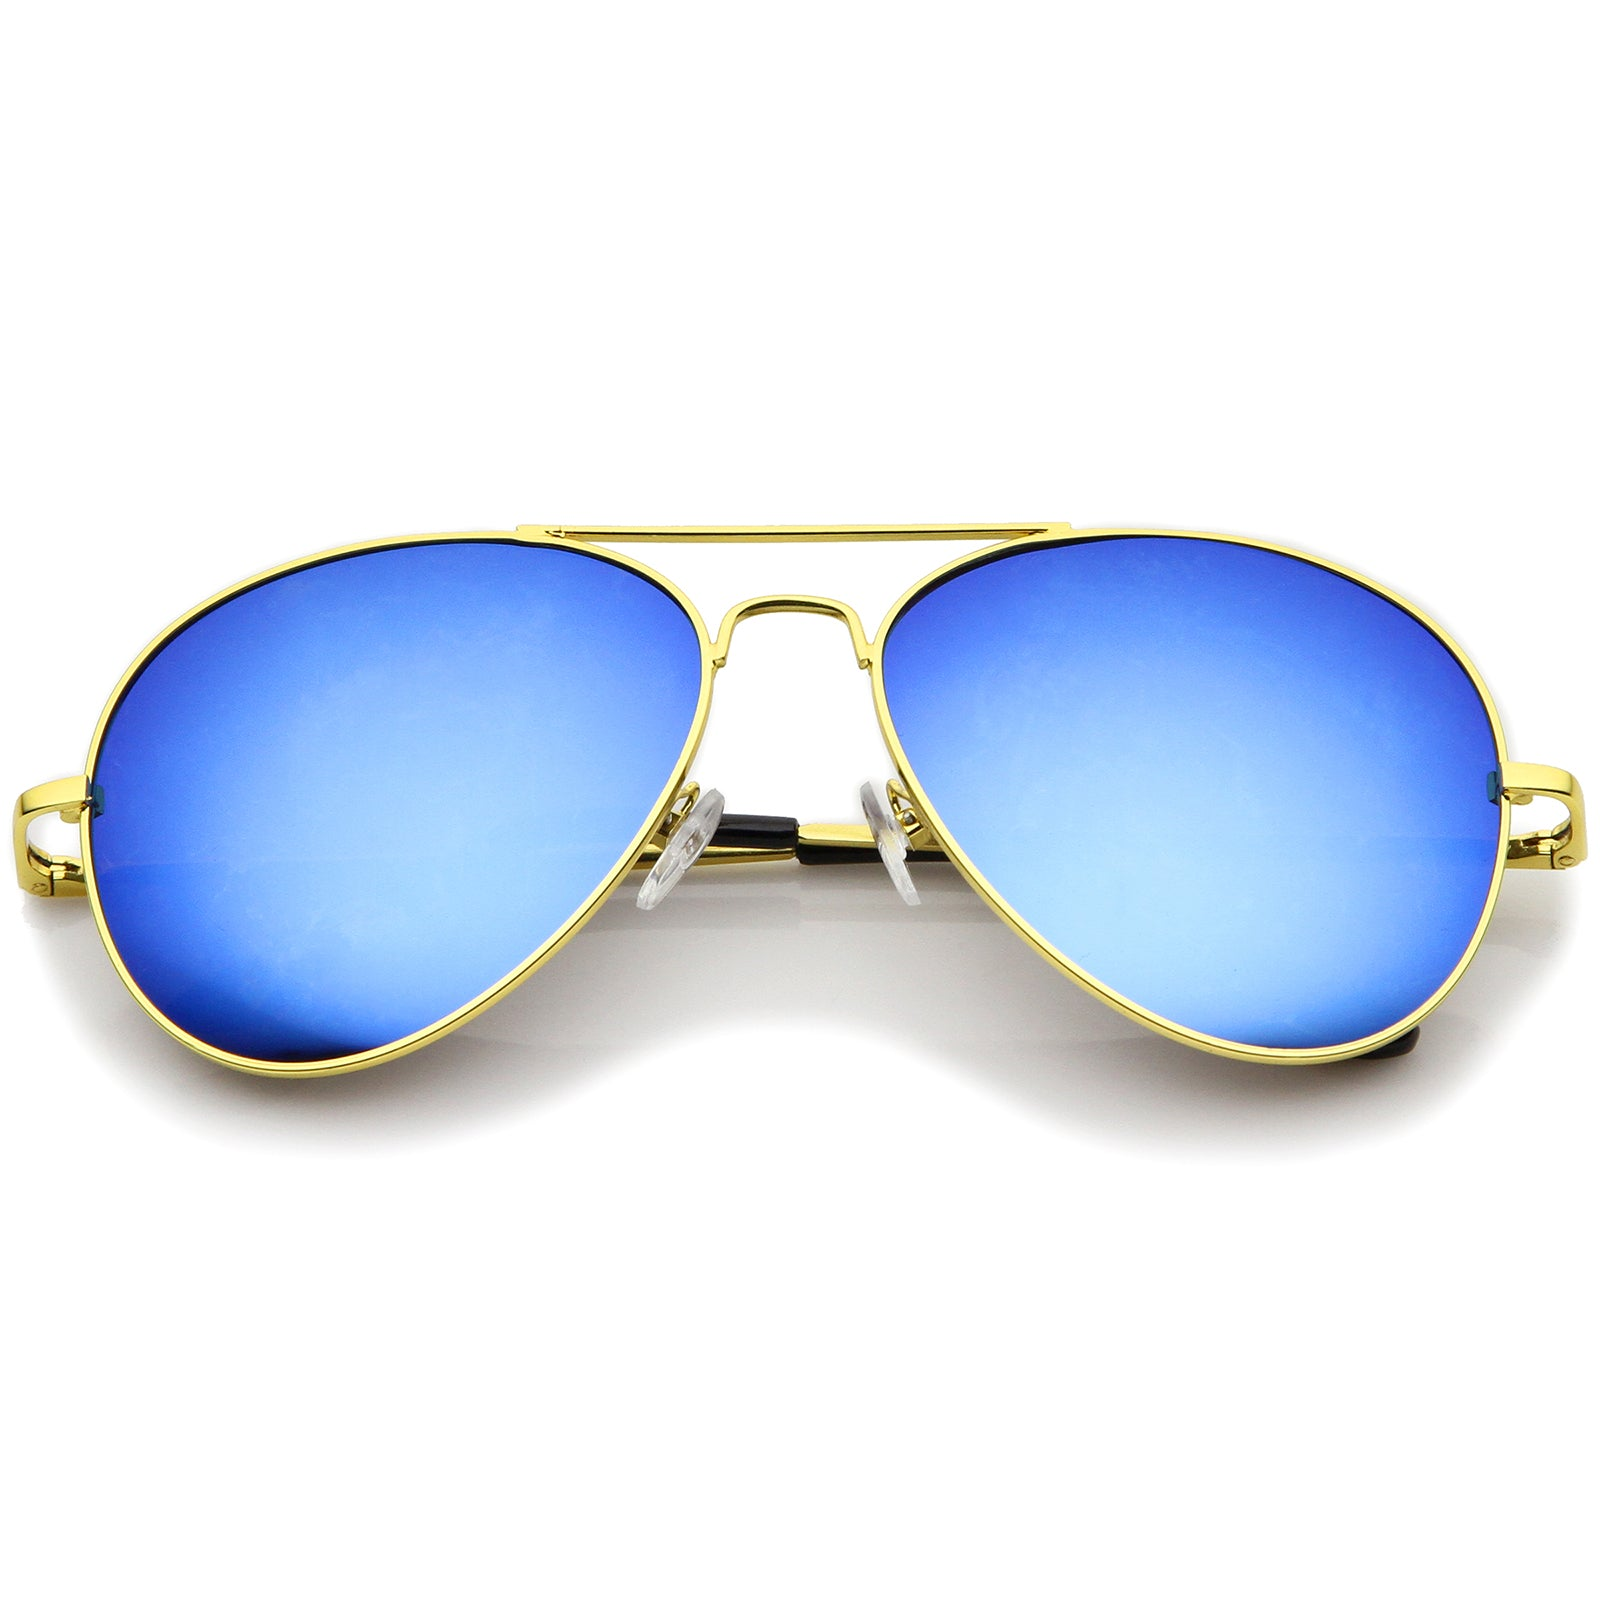 Classic Metal Frame Spring Hinges Color Mirror Lens Aviator Sunglasses Sunglass La